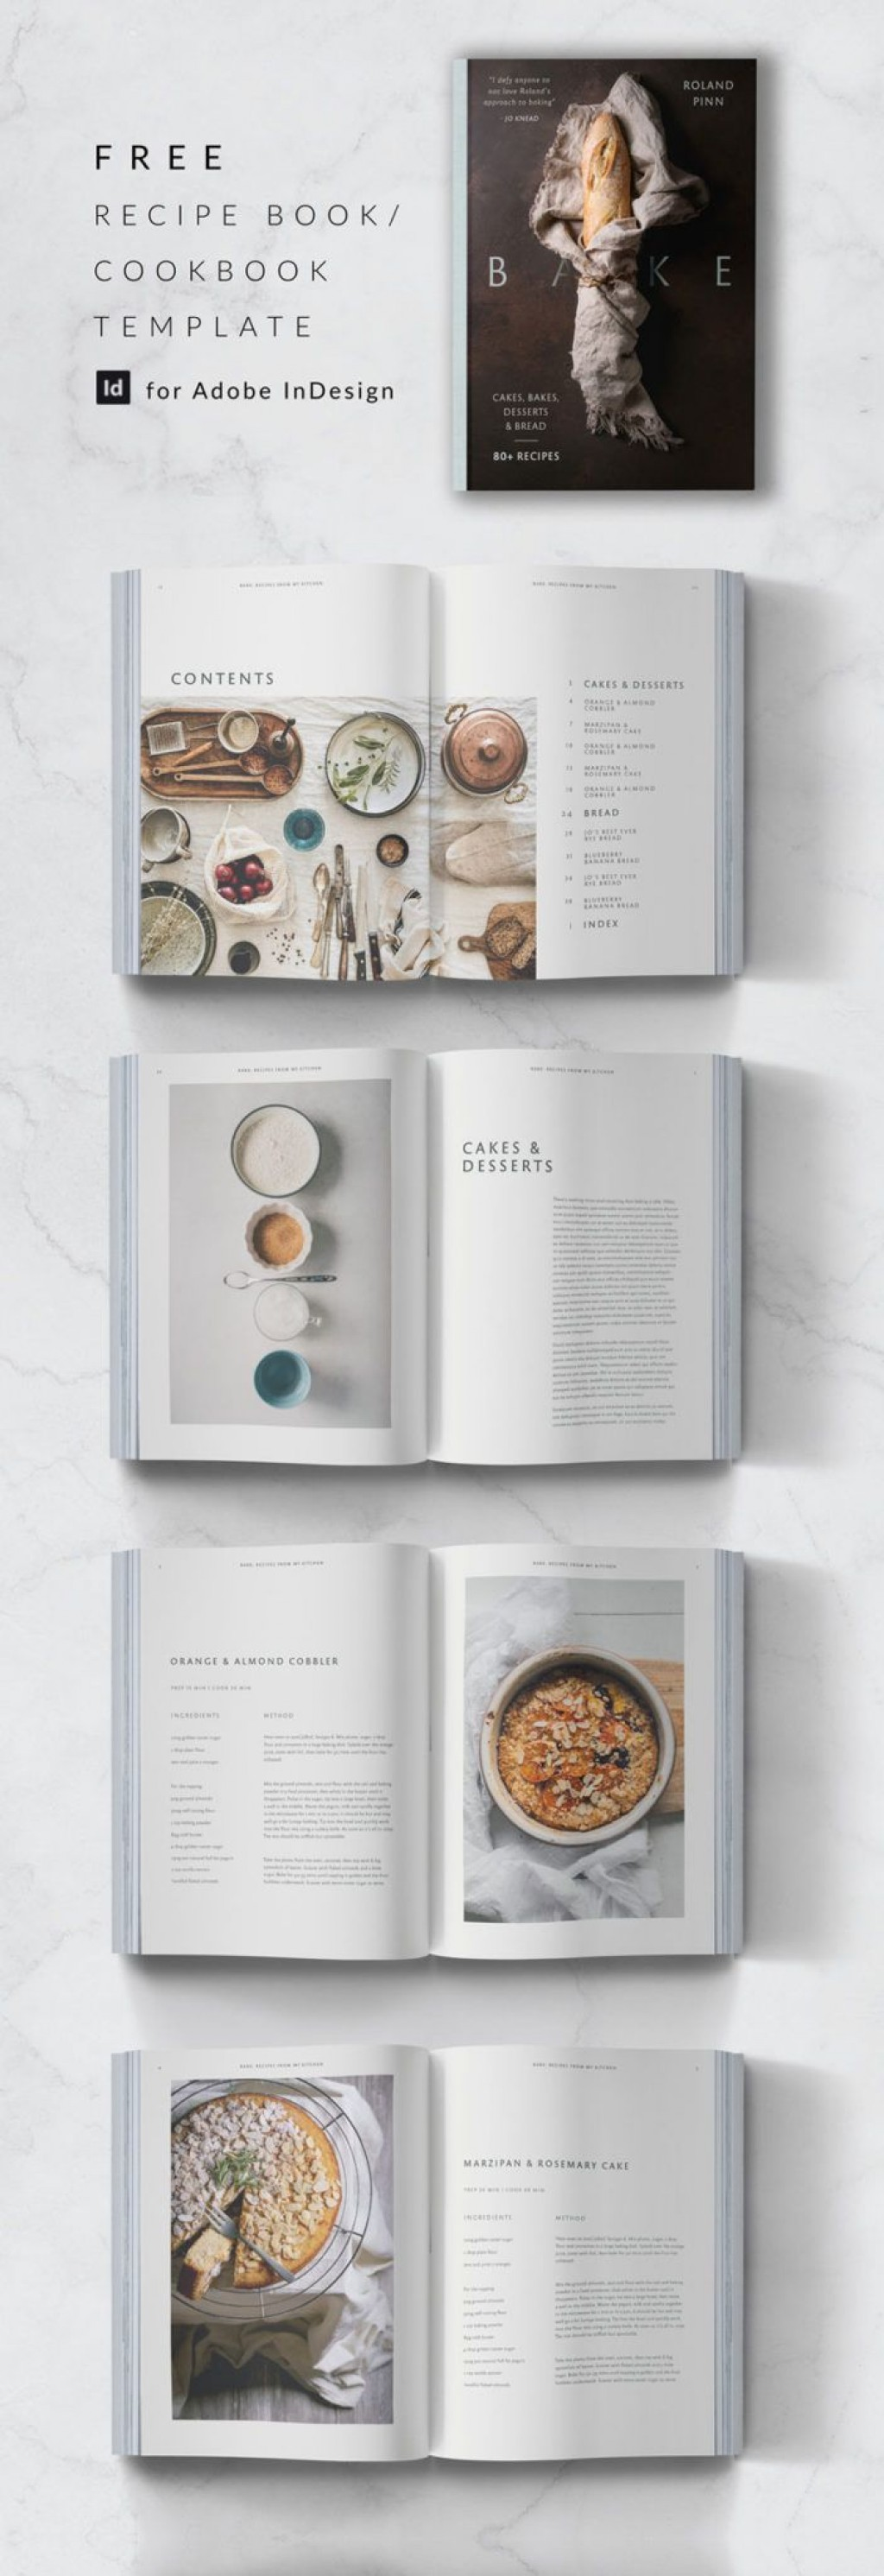 009 Amazing Free Recipe Book Template Concept  Editable Cookbook For Microsoft Word IndesignLarge